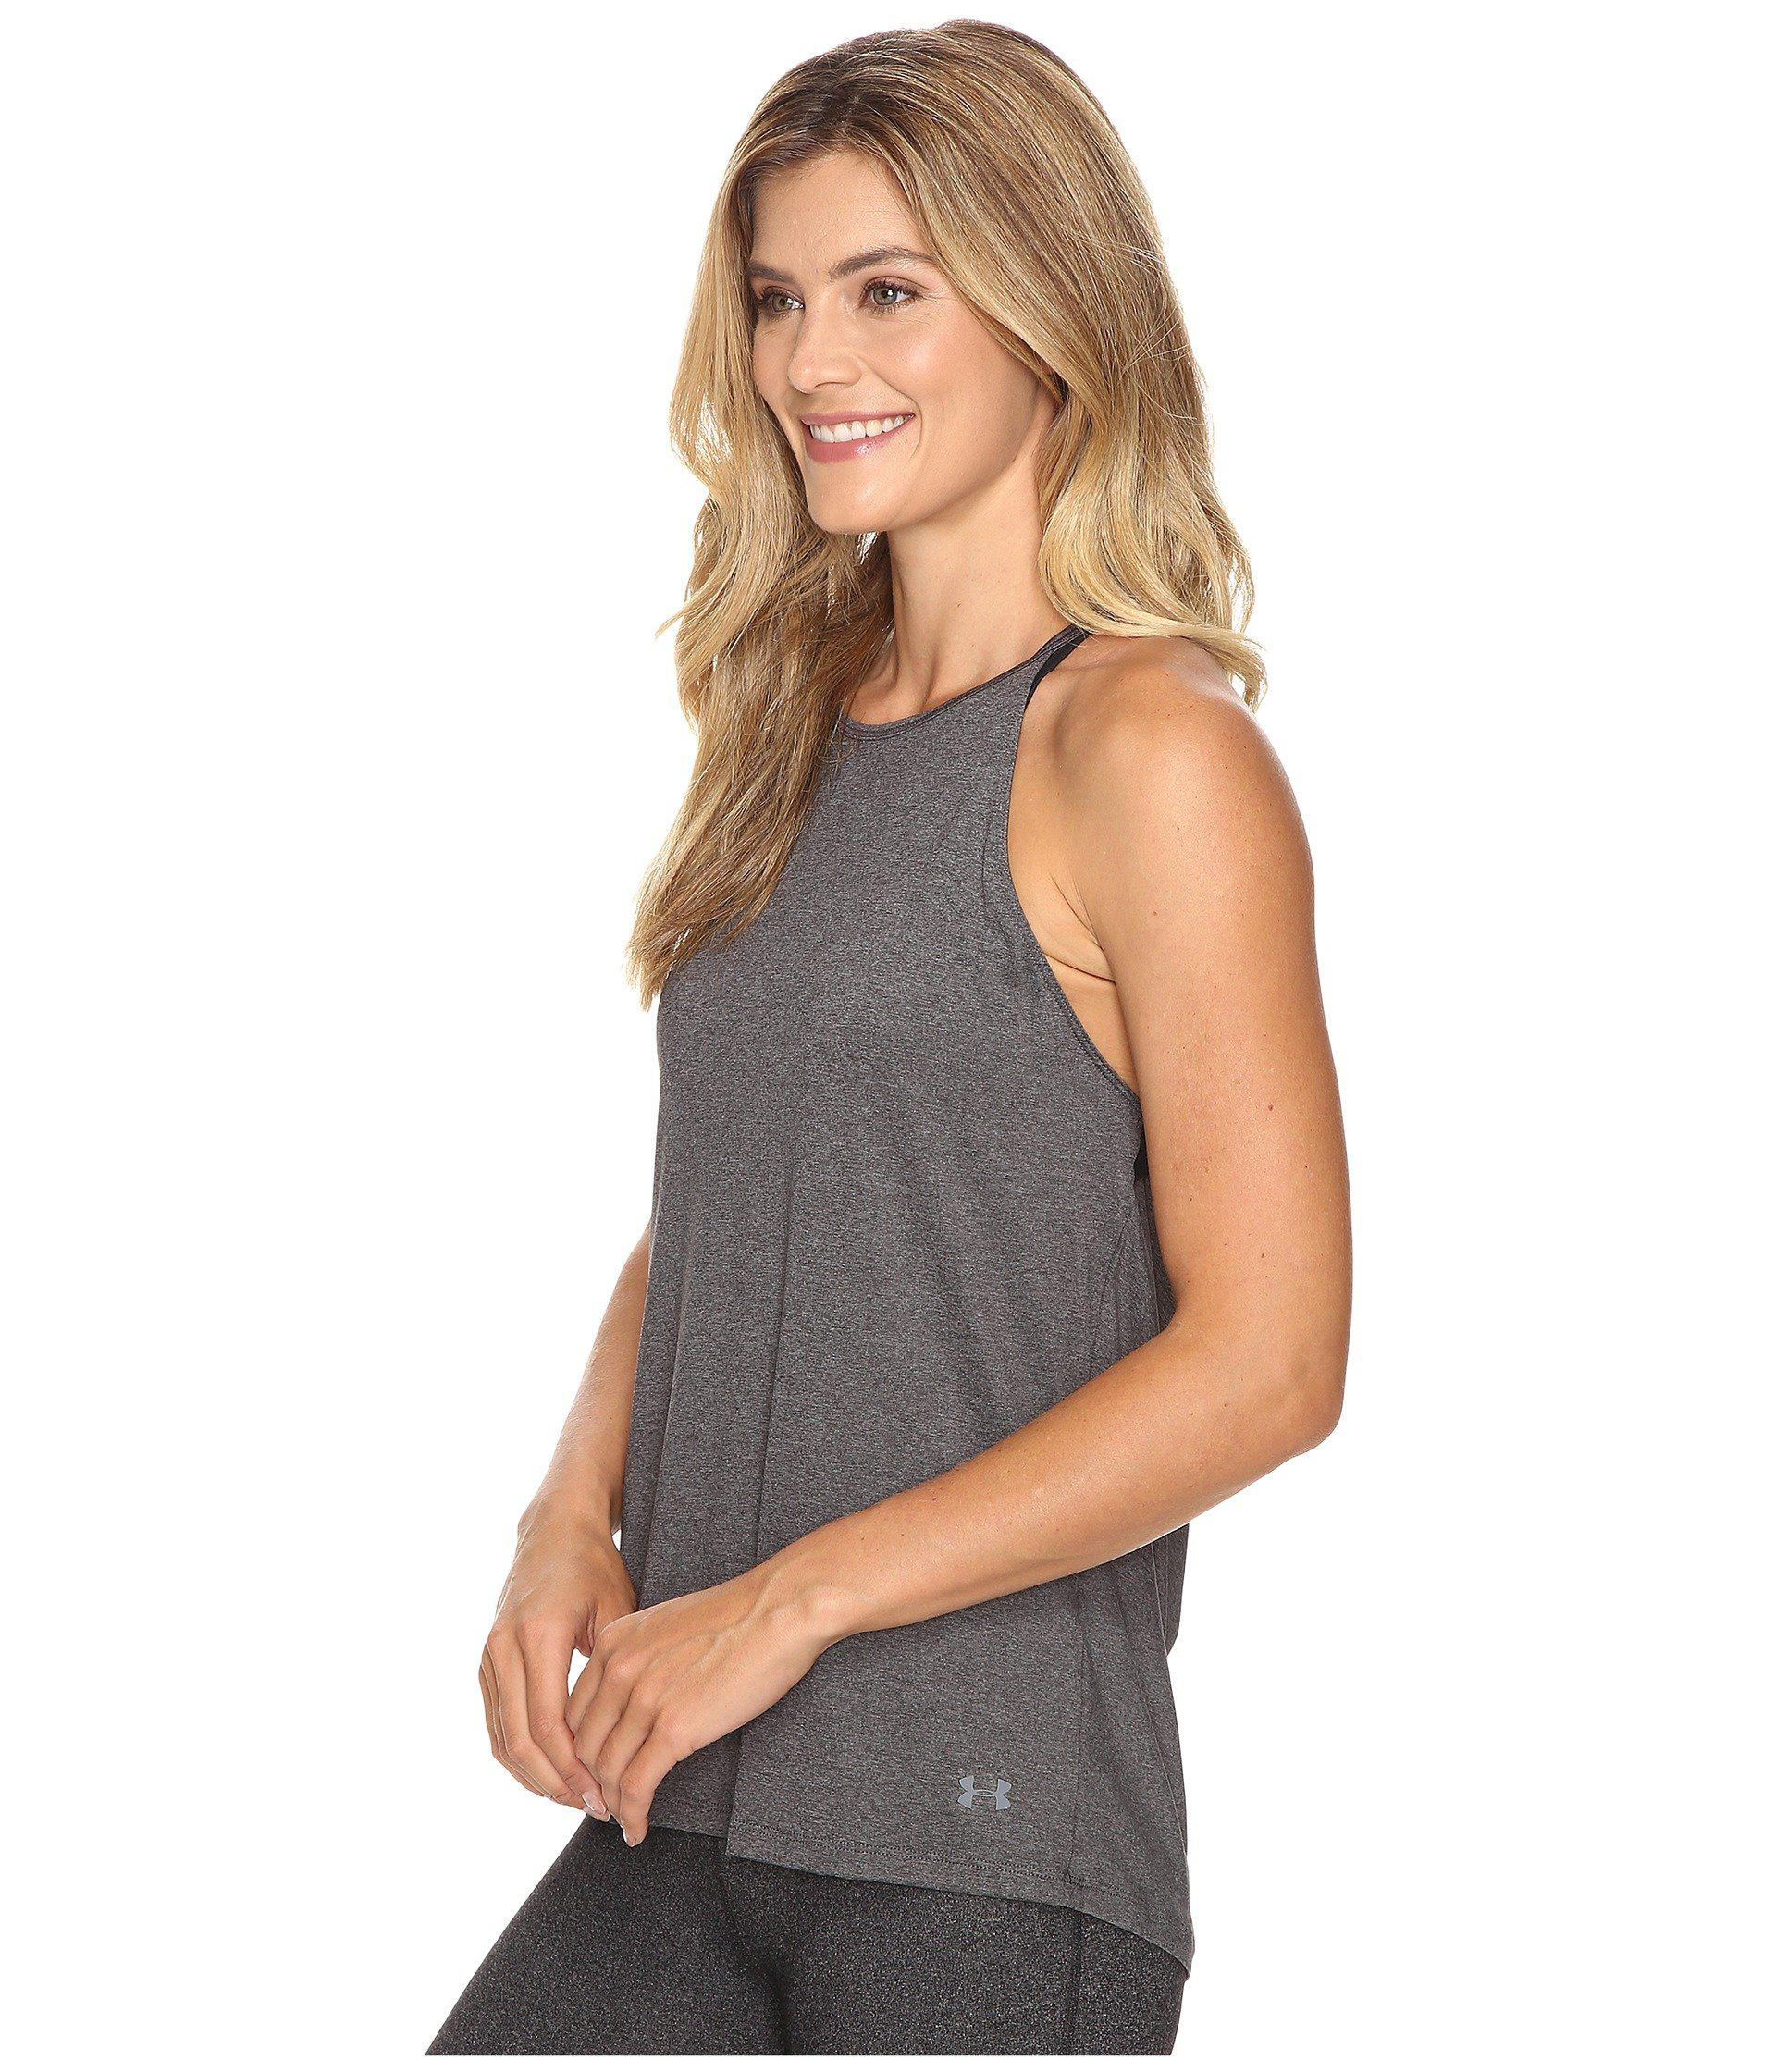 cac1ff9711b3f Lyst - Under Armour Ua Wishbone Tank Top in Gray - Save 31%